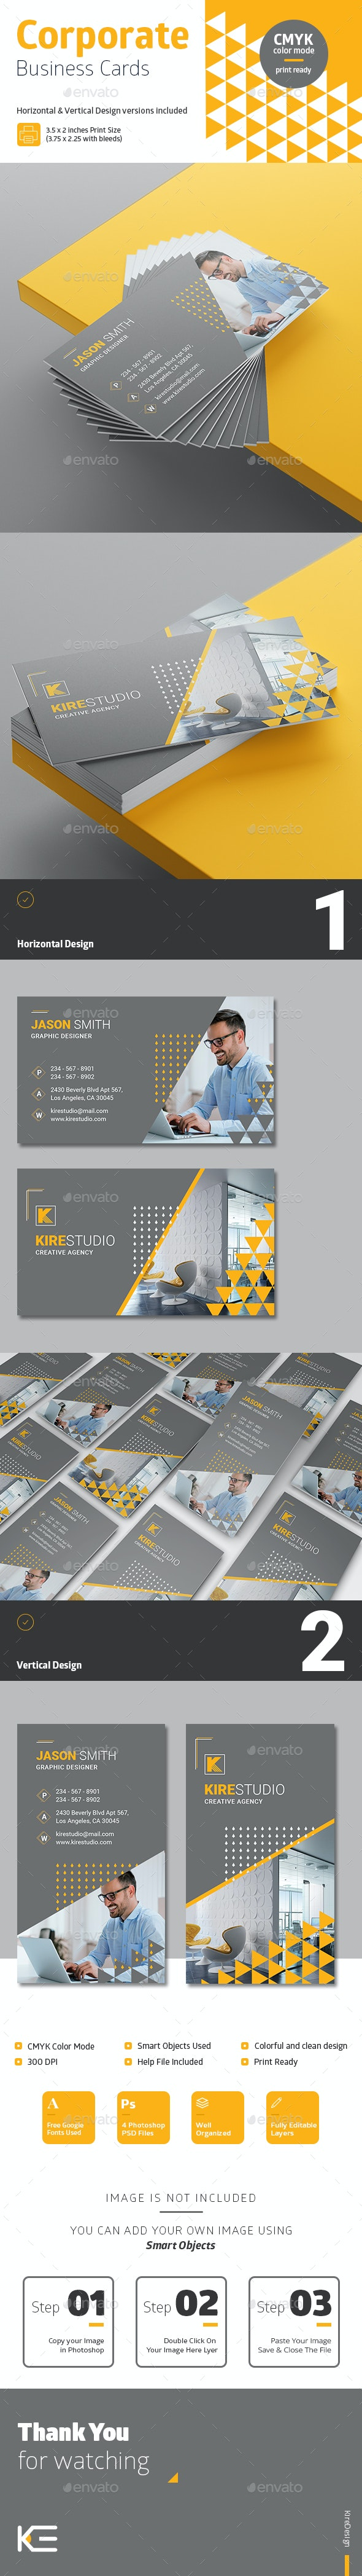 Horizontal & Vertical Corporate Business Cards #4 - Corporate Business Cards